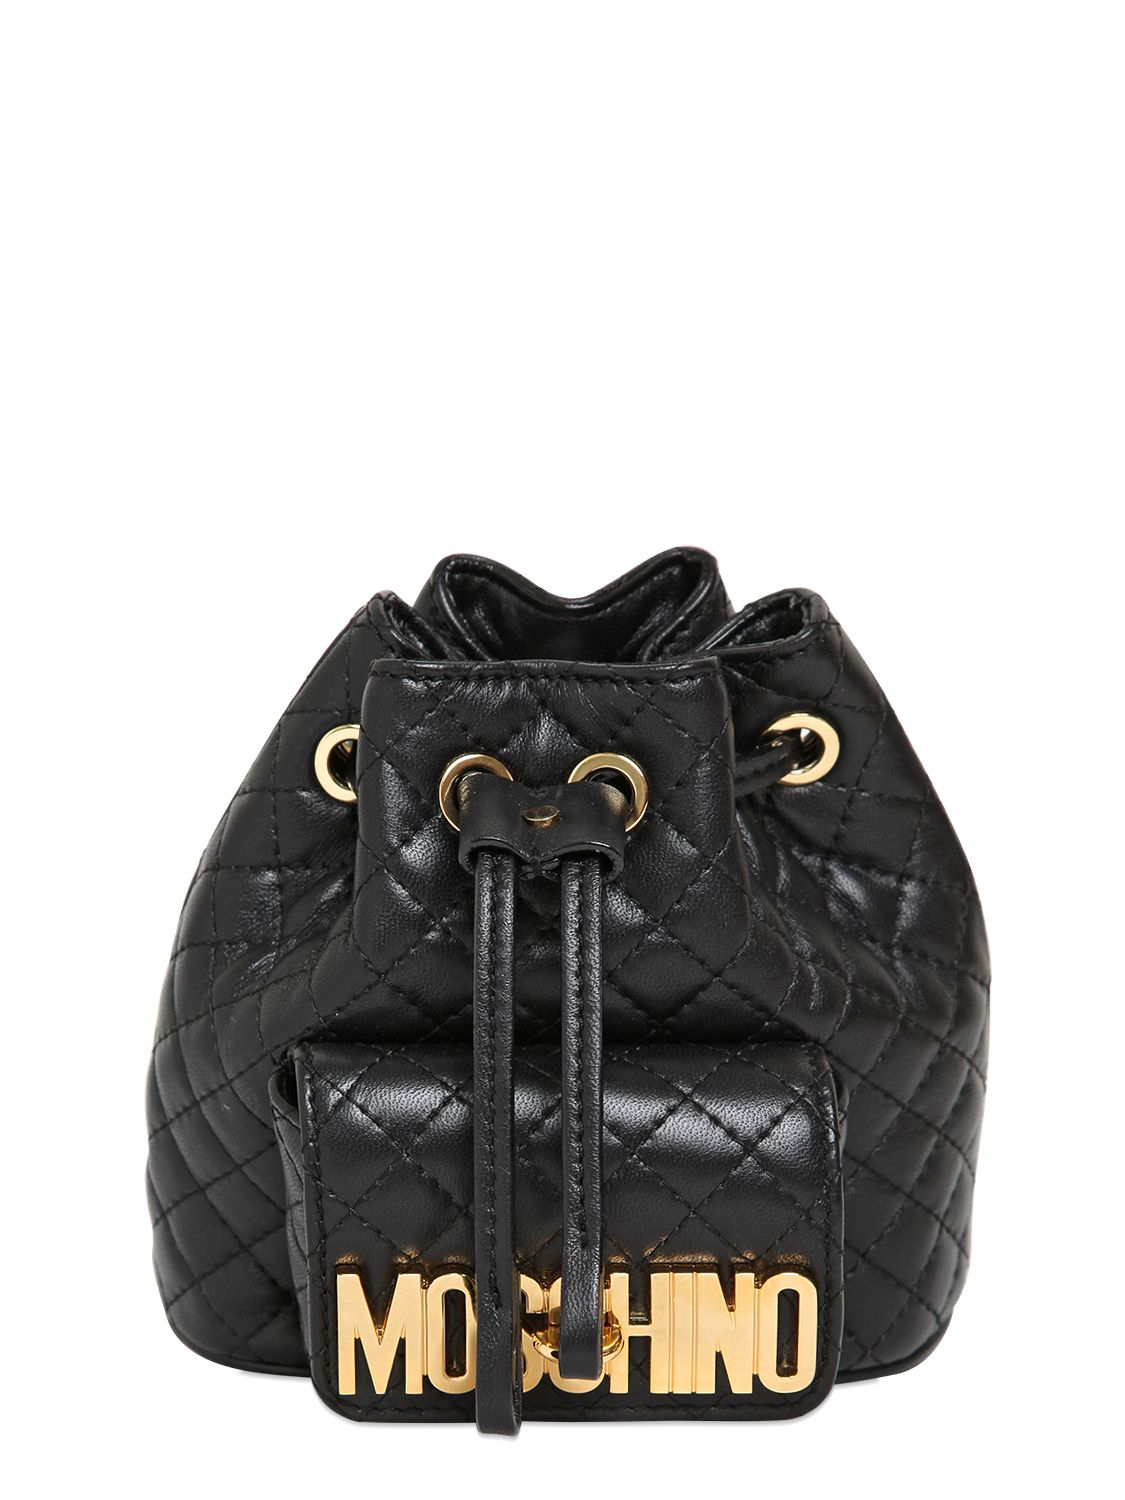 Moschino Mini Quilted Backpack in Black | Lyst : quilted leather rucksack - Adamdwight.com